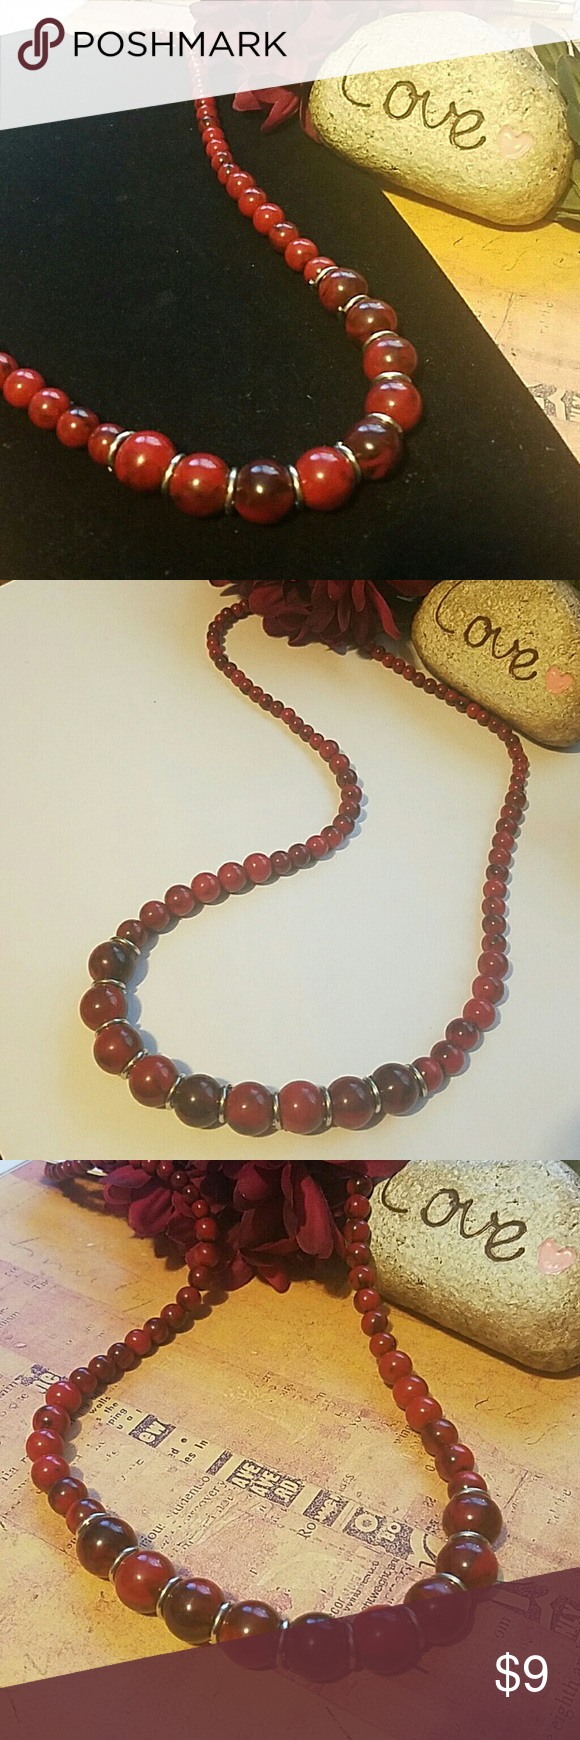 """26"""" Red & Black Marbled Bead Necklace Silver ring accents, to accent larger beads & silvertone lobster closure Jewelry Necklaces"""